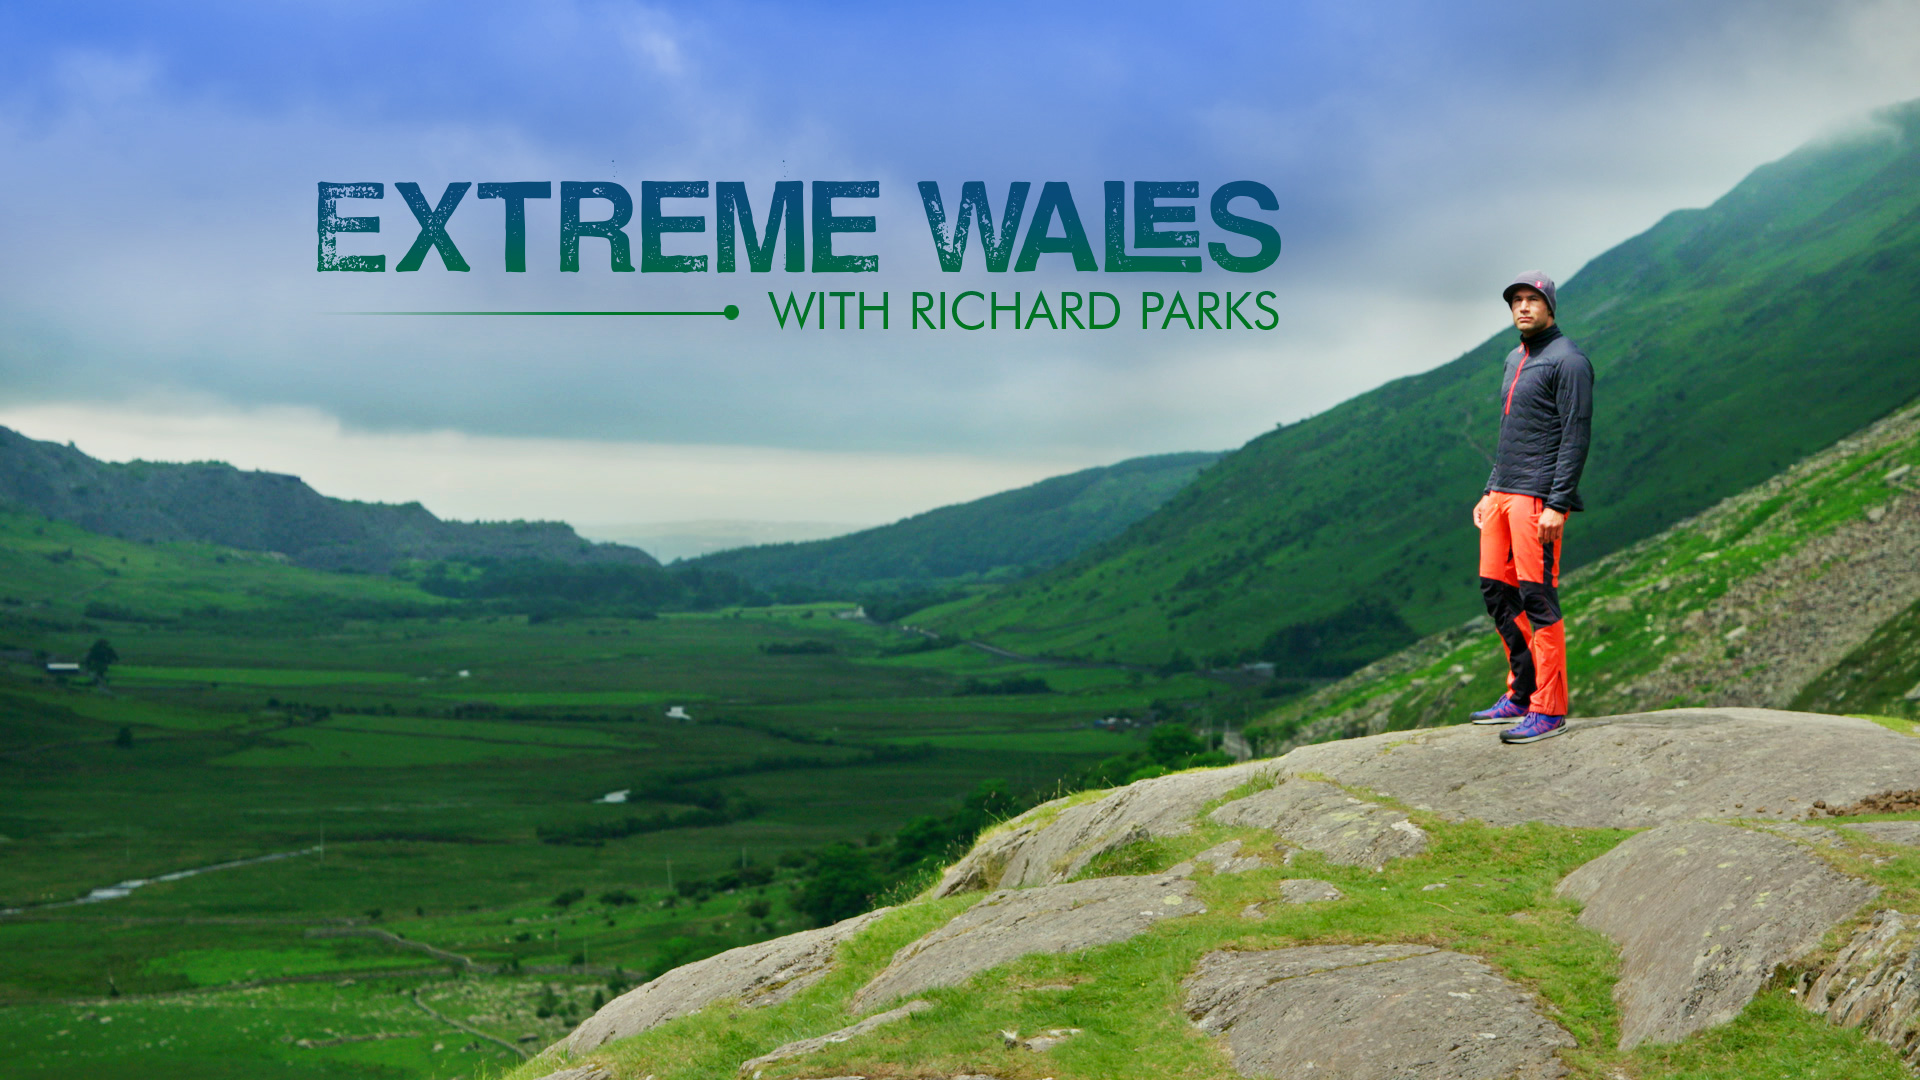 Extreme Wales with Richard Parks © Holey and Moley Ltd